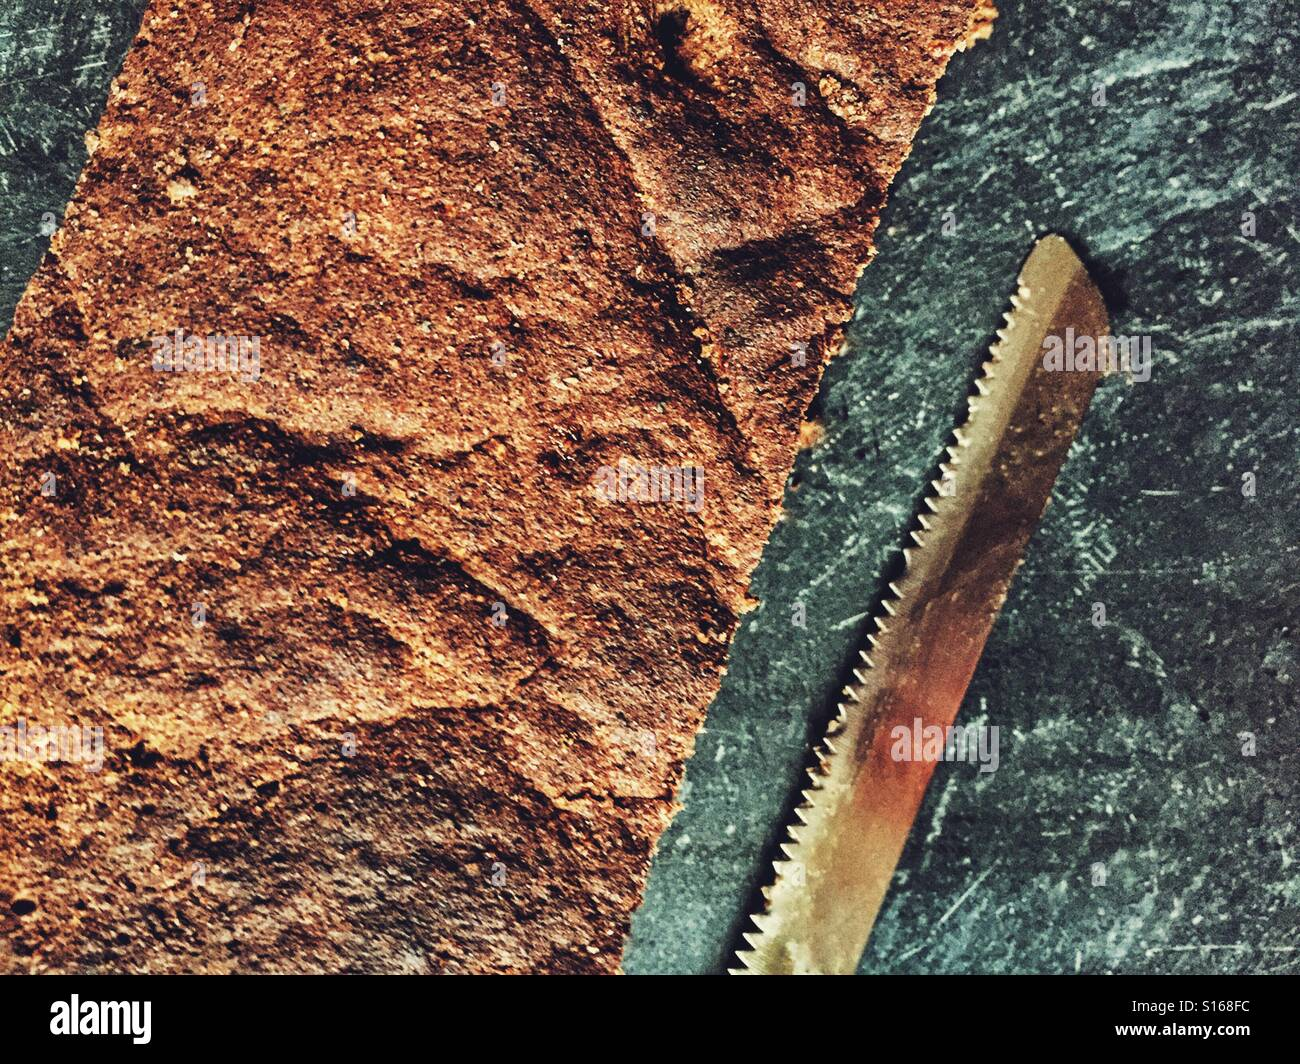 Wholewheat bread and knife on a Dark background - Stock Image